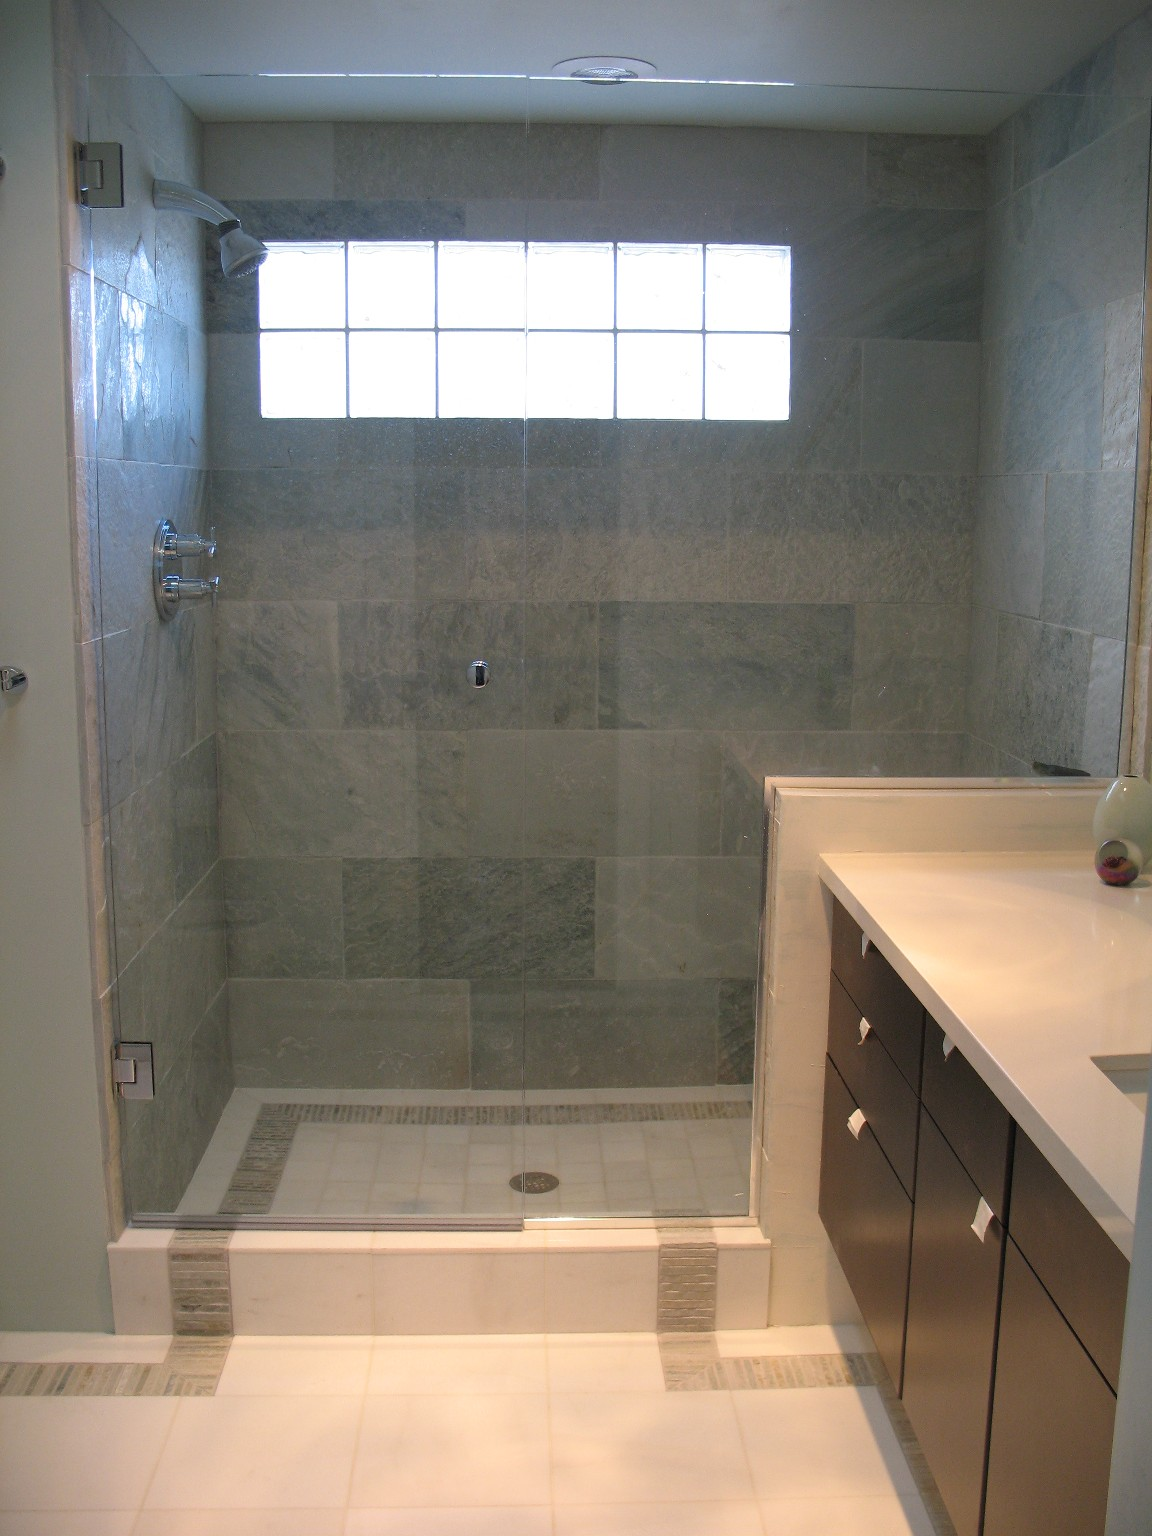 33 amazing ideas and pictures of modern bathroom shower Bathroom shower tile designs